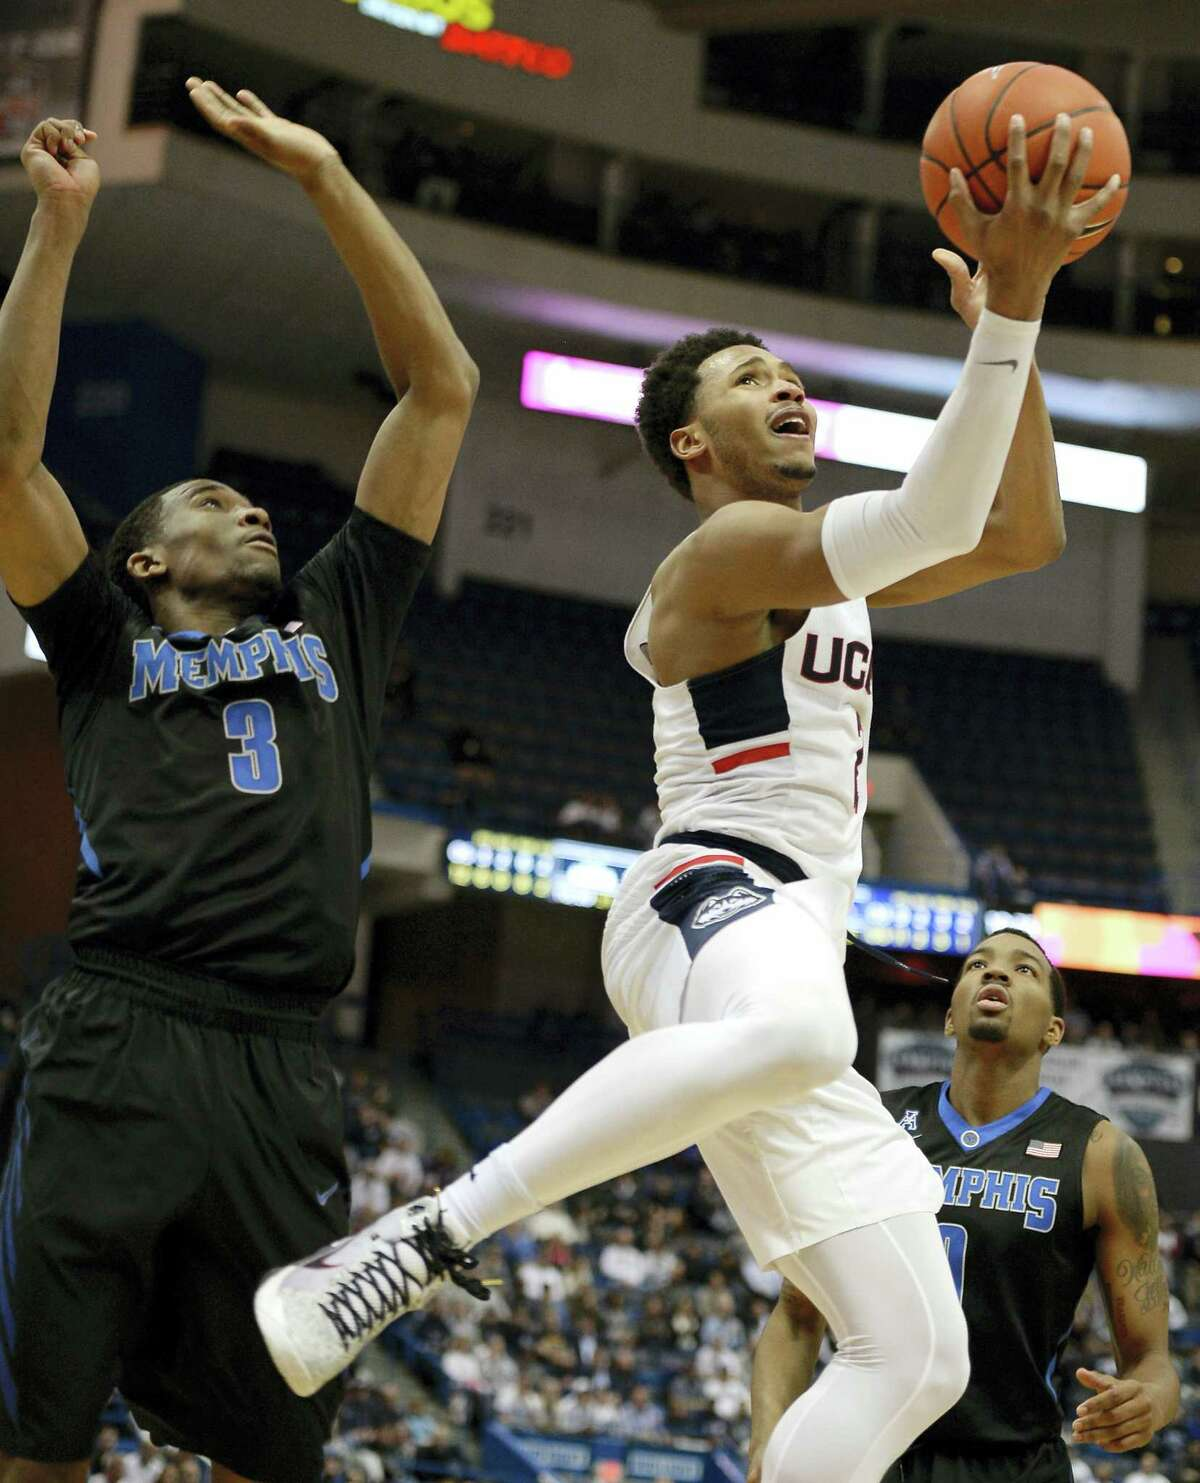 JESSICA HILL — THE ASSOCIATED PRESS UConn's Jalen Adams, right, shoots a basket as Memphis' Jeremiah Martin, left, defends in the second half of the Huskies' win last Thursday. UConn plays at Houston Wednesday night.